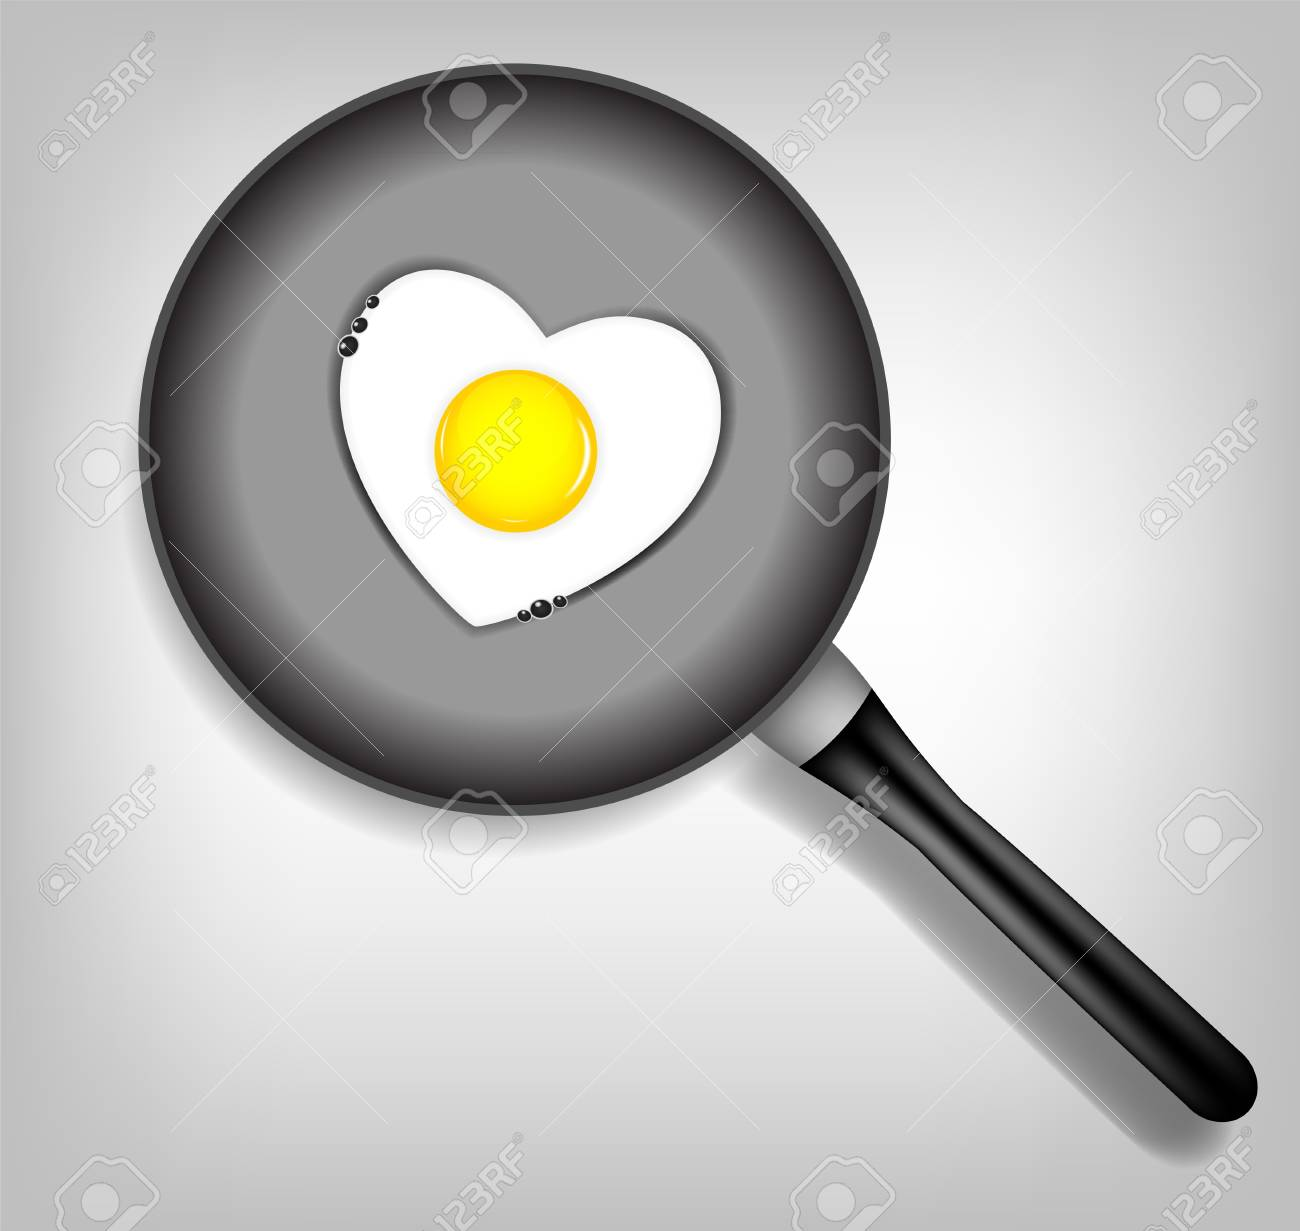 Fried eggs vector illustration Stock Vector - 17707644